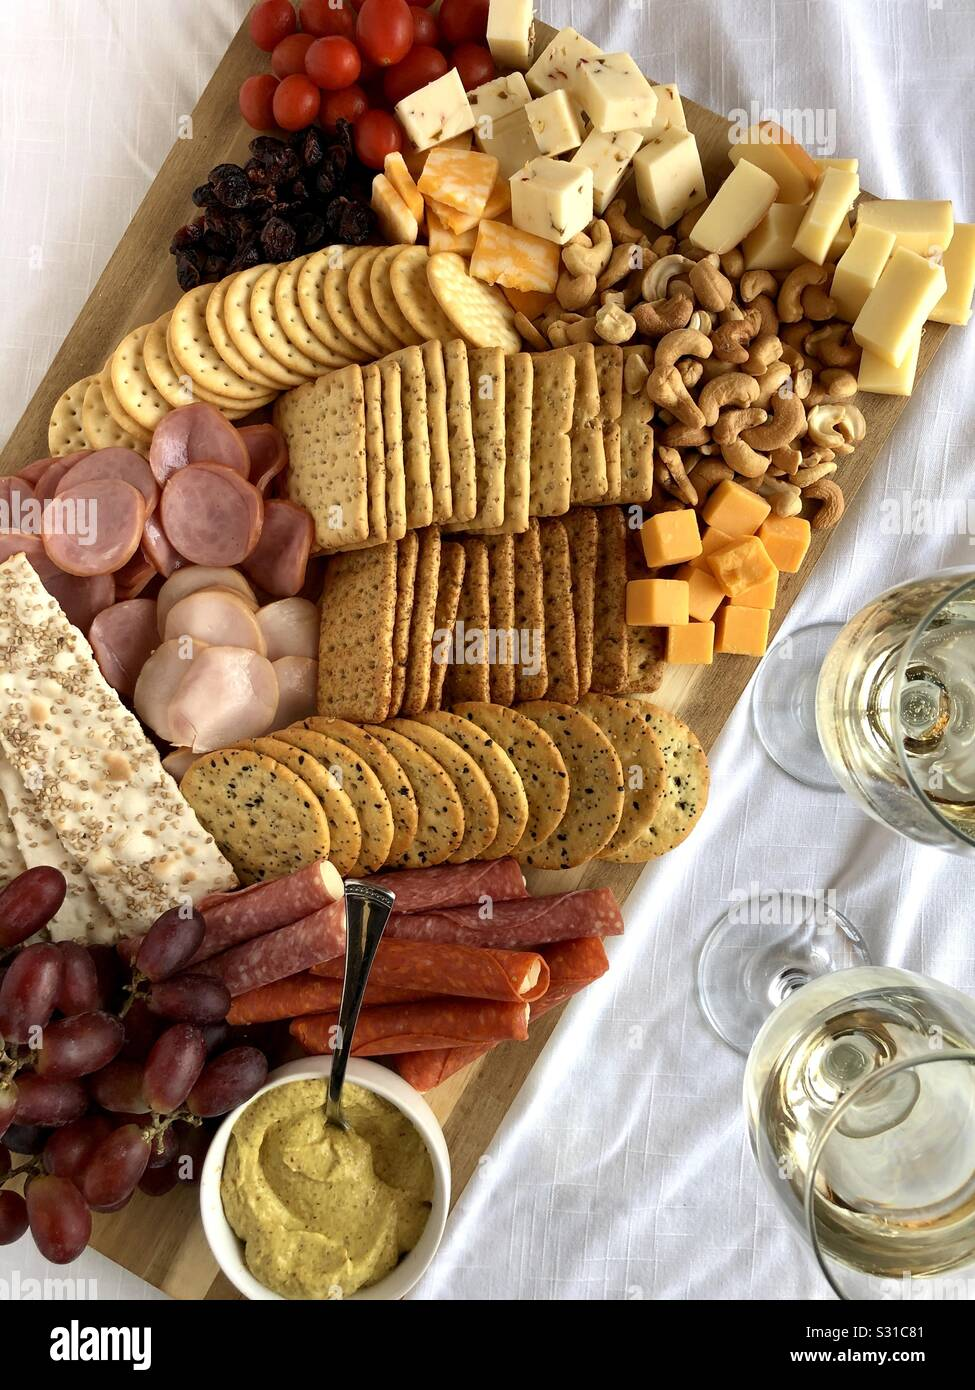 Charcuterie board with wine Stock Photo